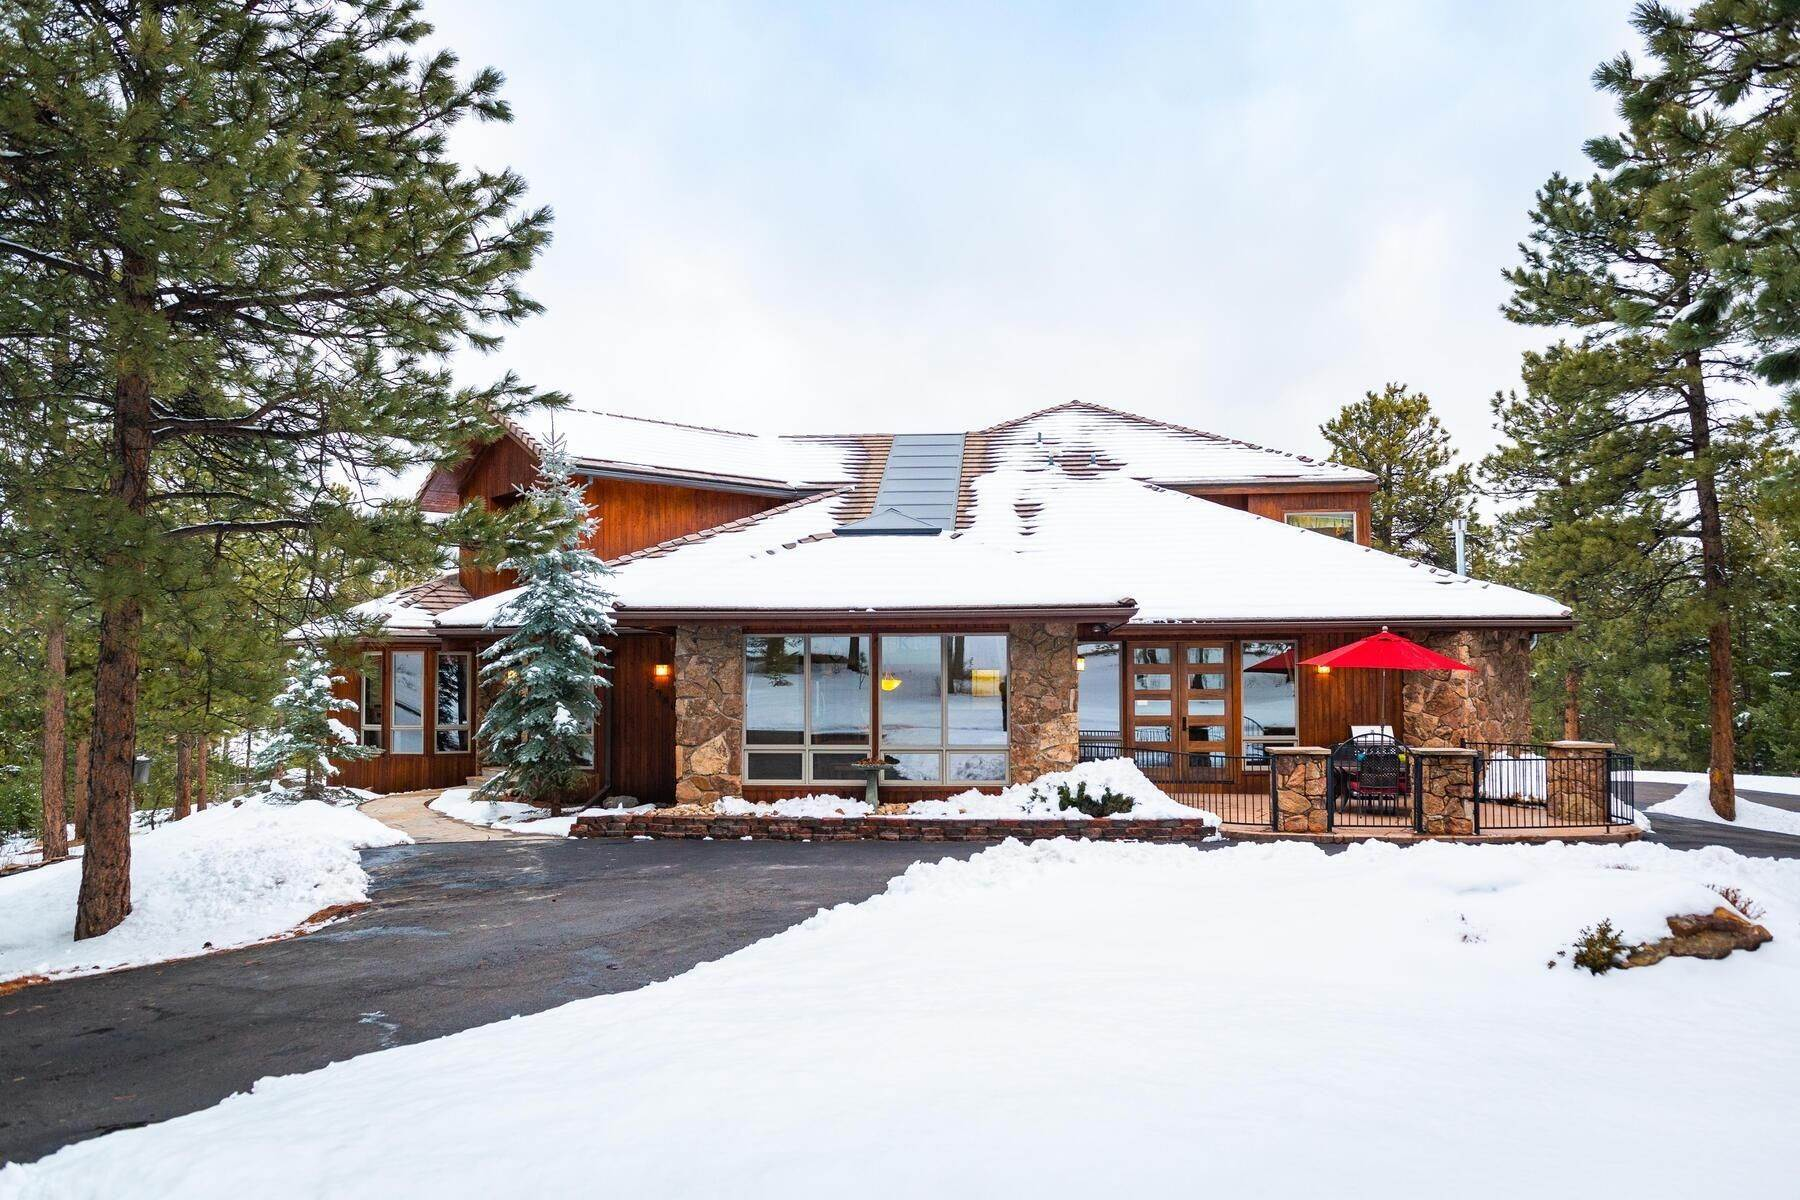 Single Family Homes for Active at Serene, Private Setting in the Heart of N. Evergreen! 29807 Carriage Loop Drive Evergreen, Colorado 80439 United States